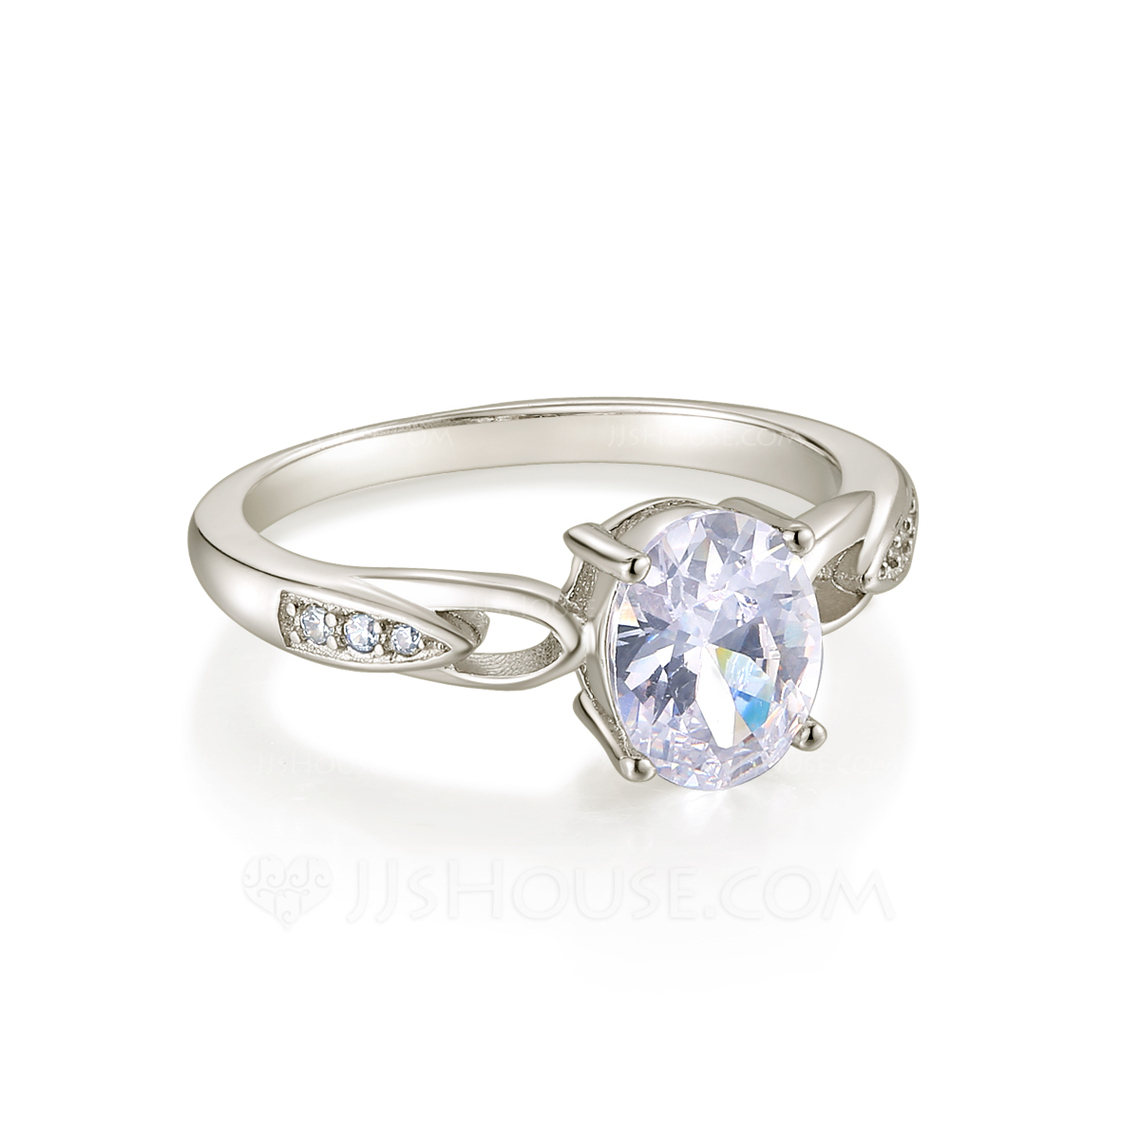 Sterling Silver Cubic Zirconia Dainty Intertwined Oval Cut Engagement Rings Promise Rings -